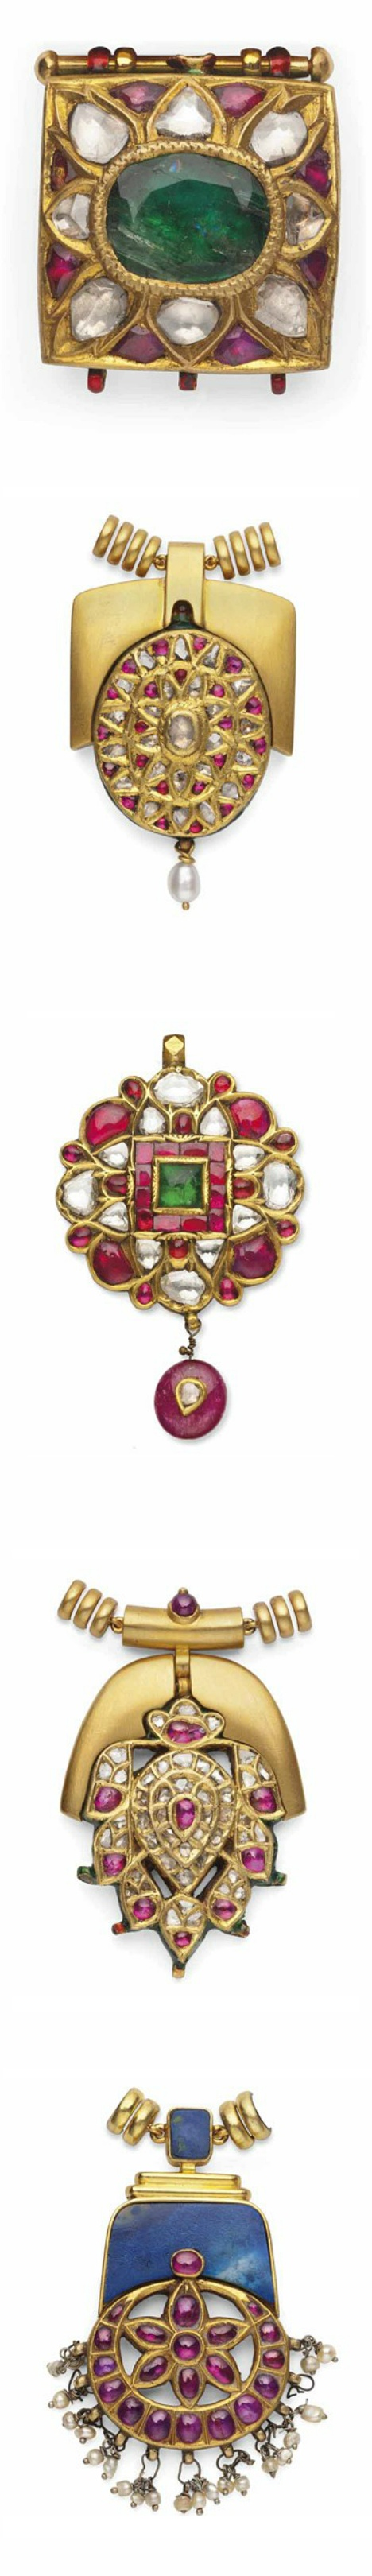 FIVE DIAMONDS AND GEM-SET PENDANTS INDIA, 19TH/EARLY 20TH CENTURY Four of circular form and one square, each with stylised floral decoration, inset with diamonds, foiled rubies and emeralds,the reverse decorated with enamelled floral sprays, each with modern laces and mounts